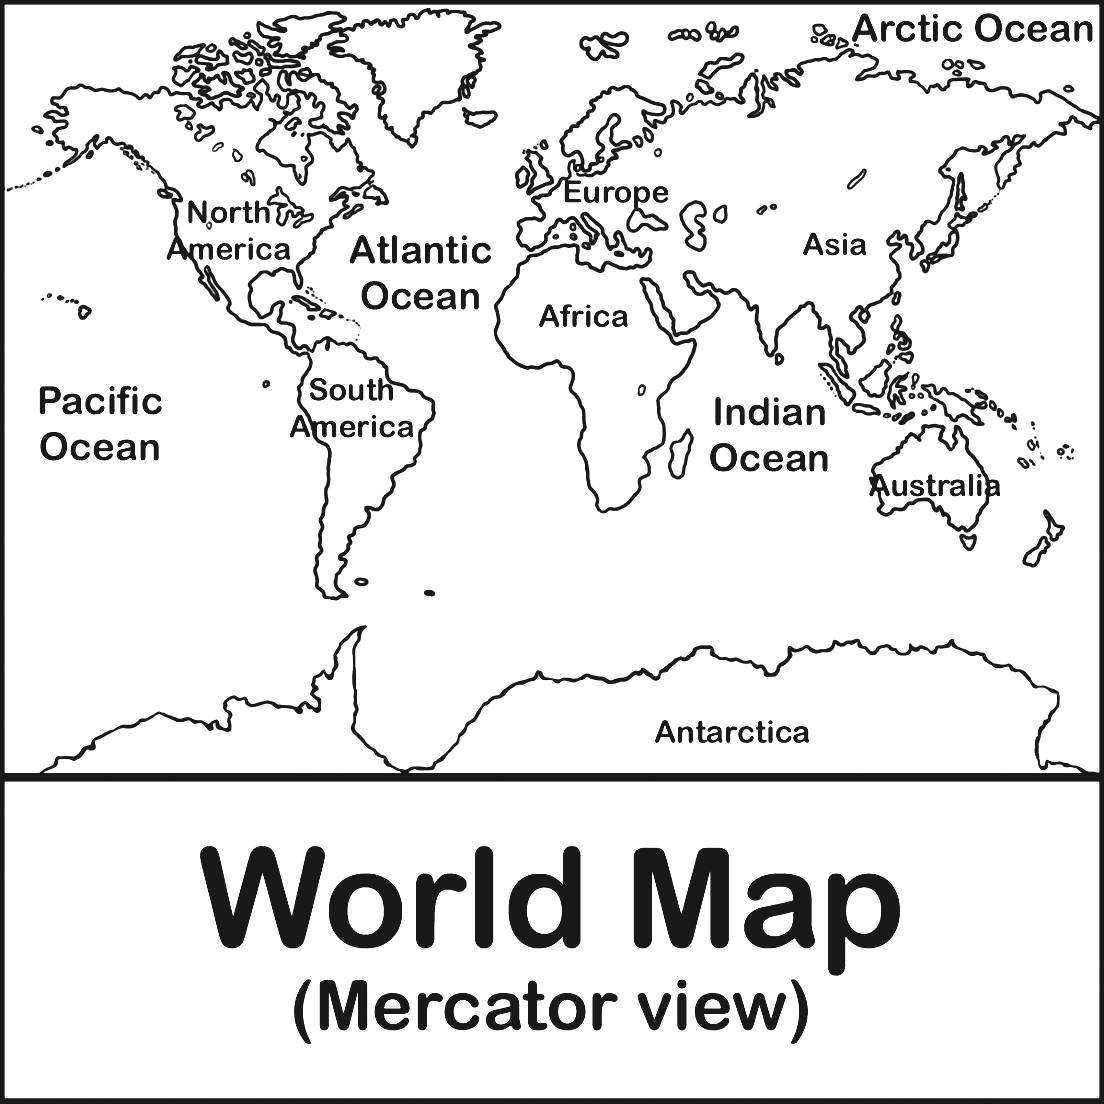 World map drawing at getdrawings free for personal use world 1104x1104 drawn map black and white gumiabroncs